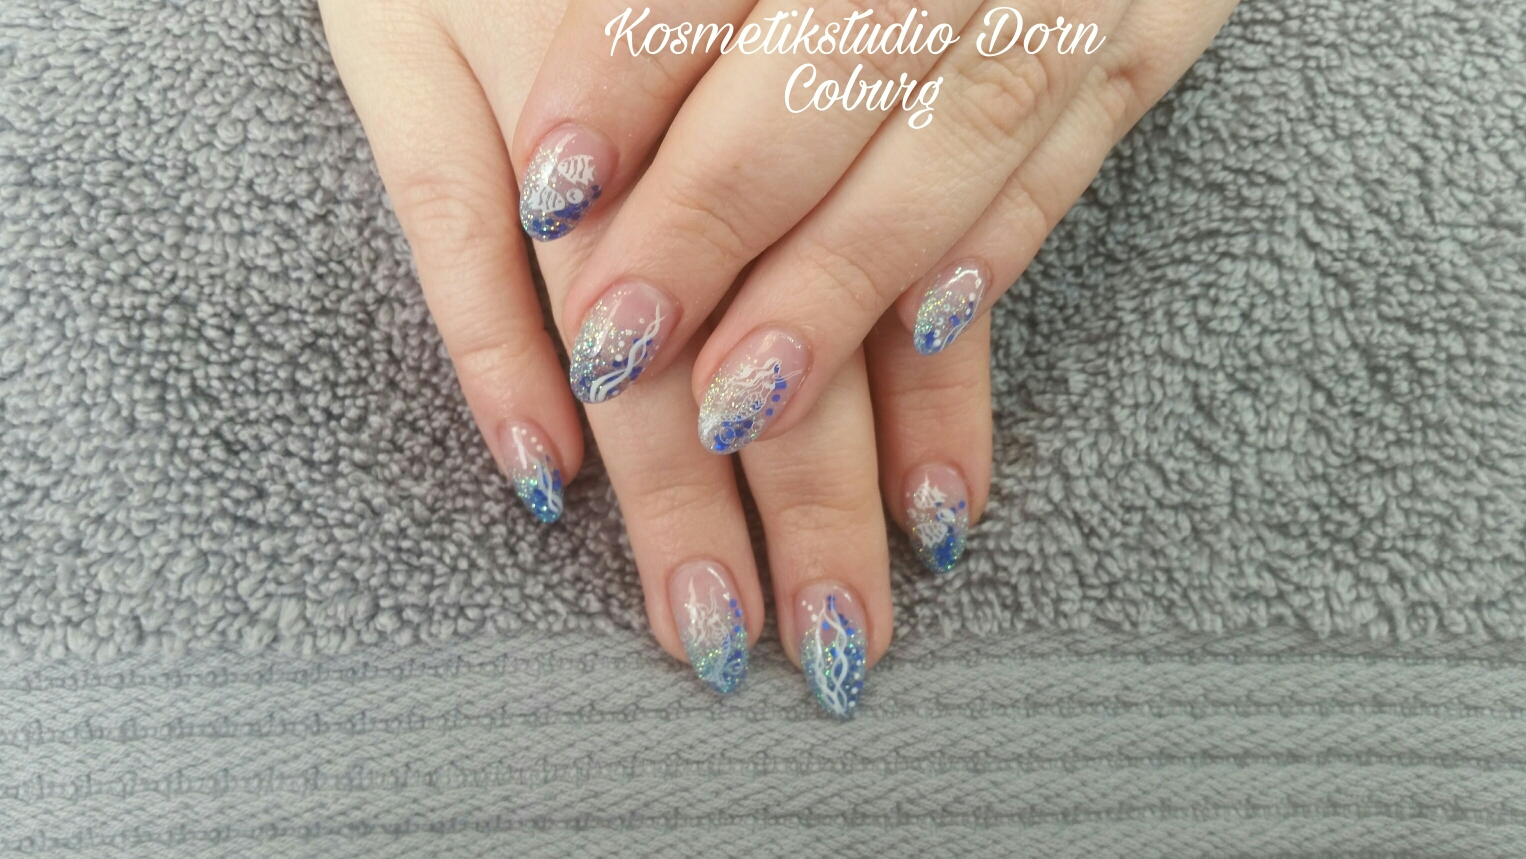 Moderne Nageldesign Nagelstudio In Coburg Kosmetik Fußpflege Nageldesign Wellness